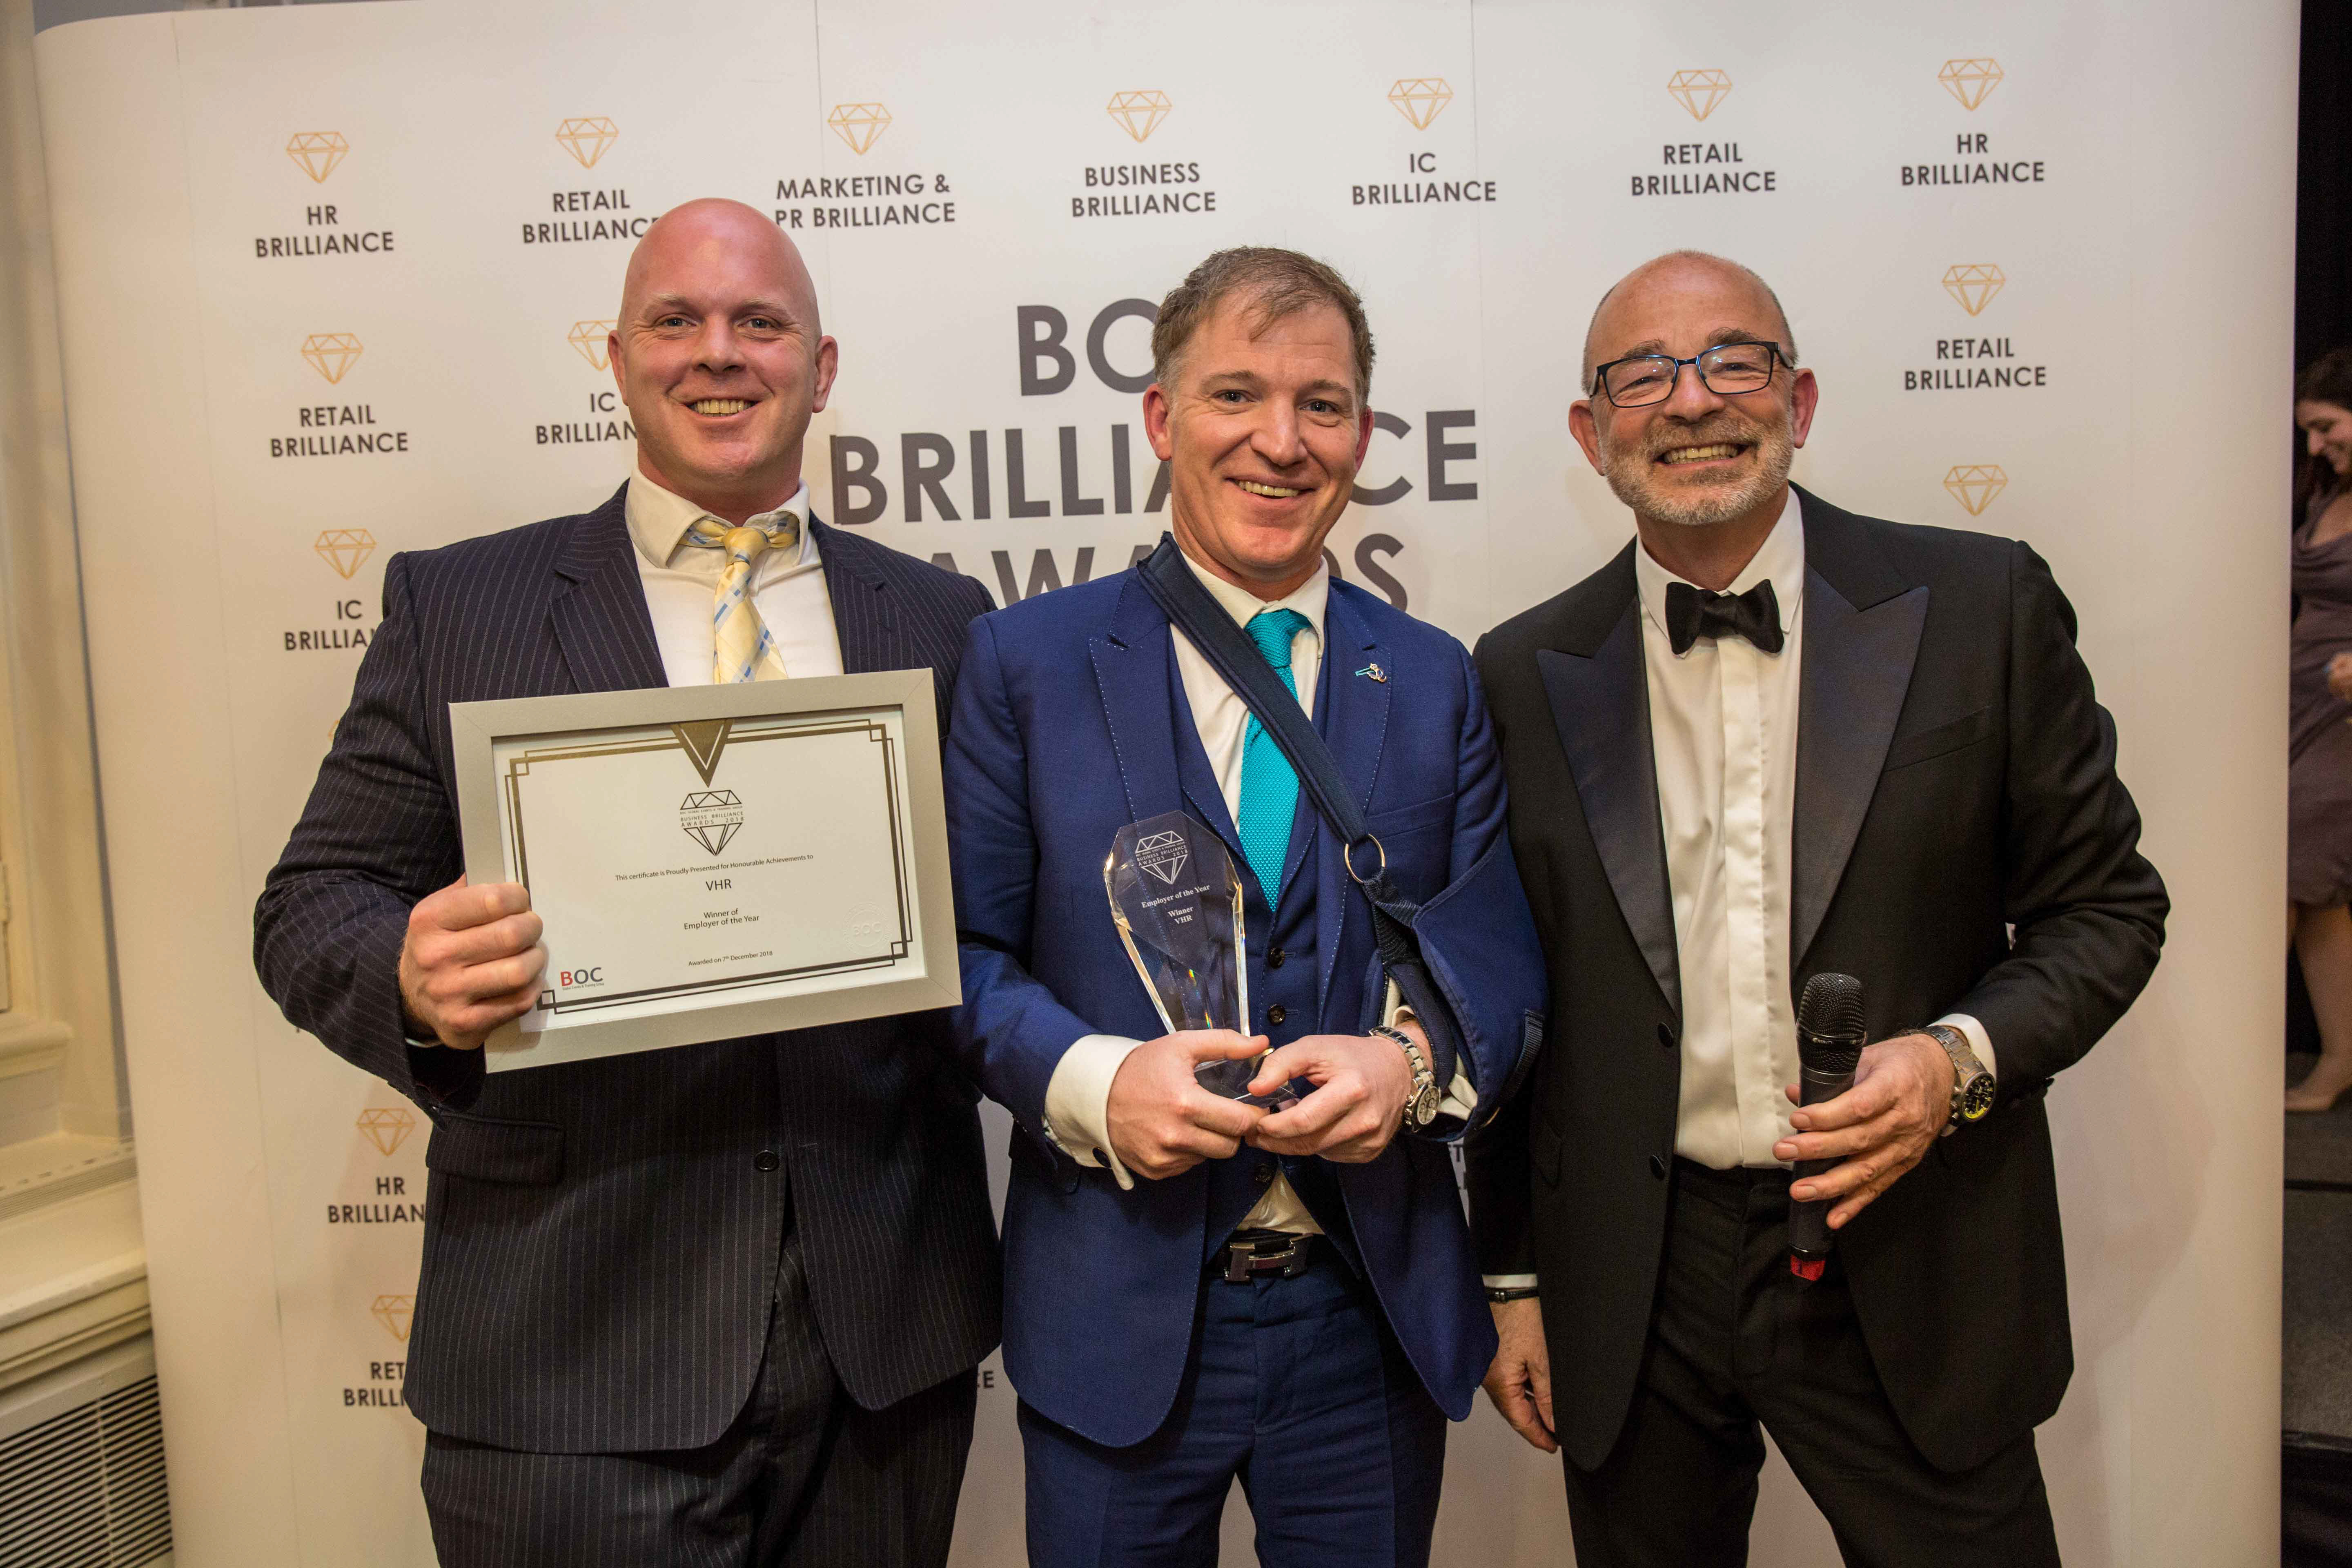 VHRb - Business Brilliance Awards 2018 Winners